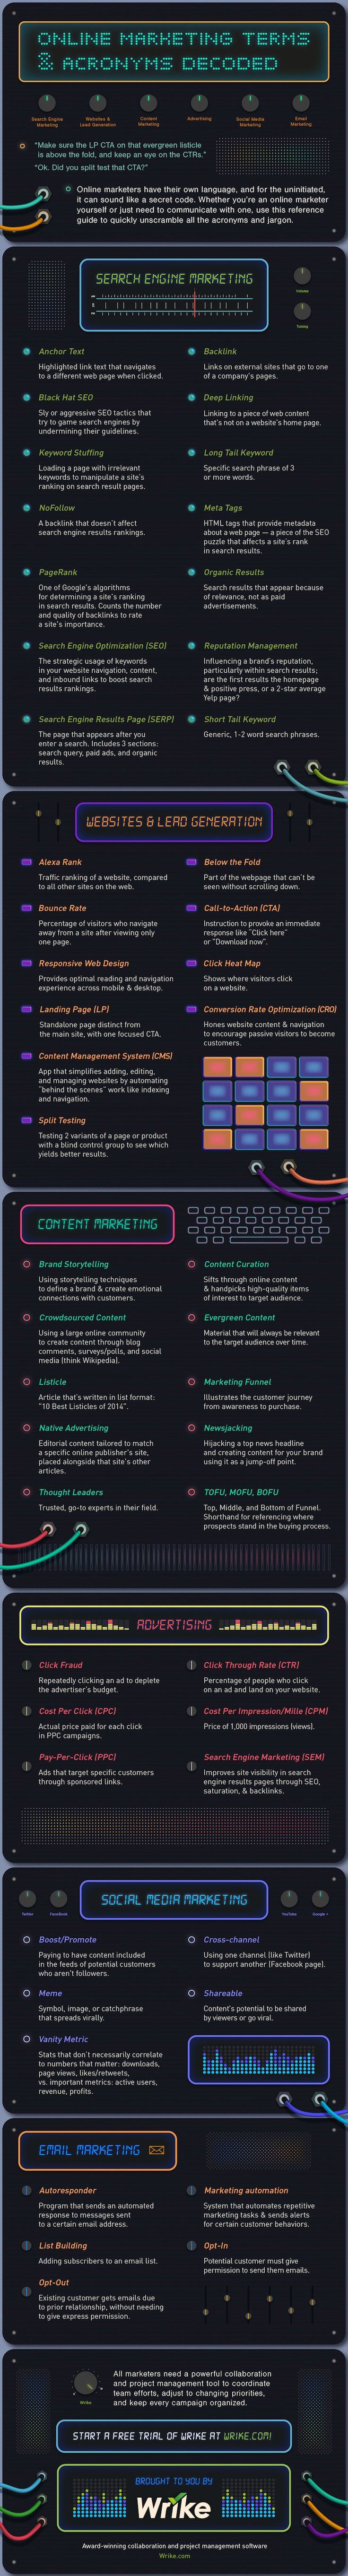 Digital-Marketing-Online-marketing-terms-and-acronyms-decoded-Infographic Digital Marketing : Online marketing terms and acronyms decoded  #Infographic